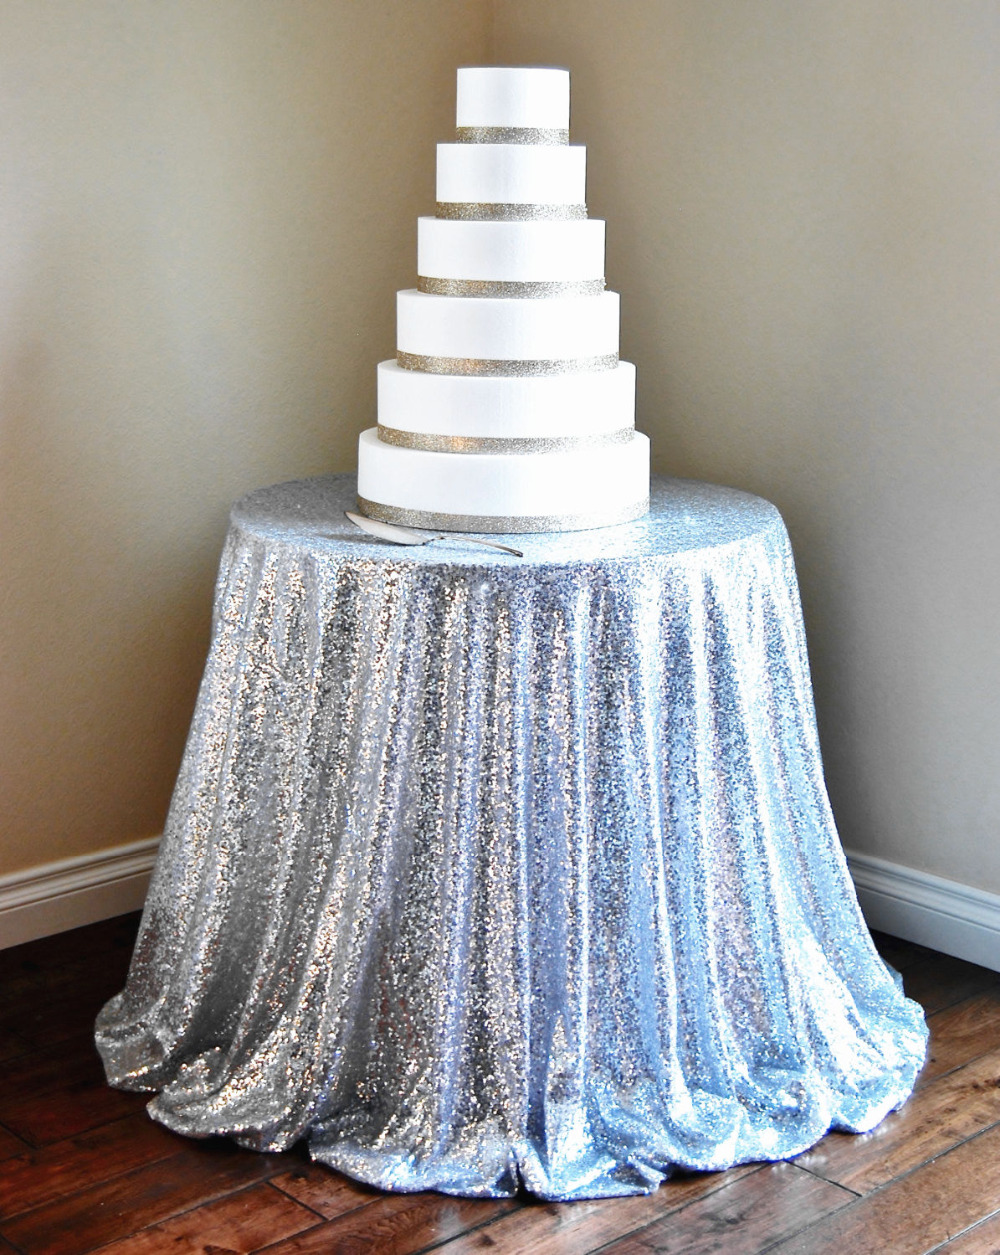 96 inch round tablecloth - 96 Inch Round Silver Sequin Tablecloth Wedding Beautiful Silver Sequin Table Cloth Overlay Cover